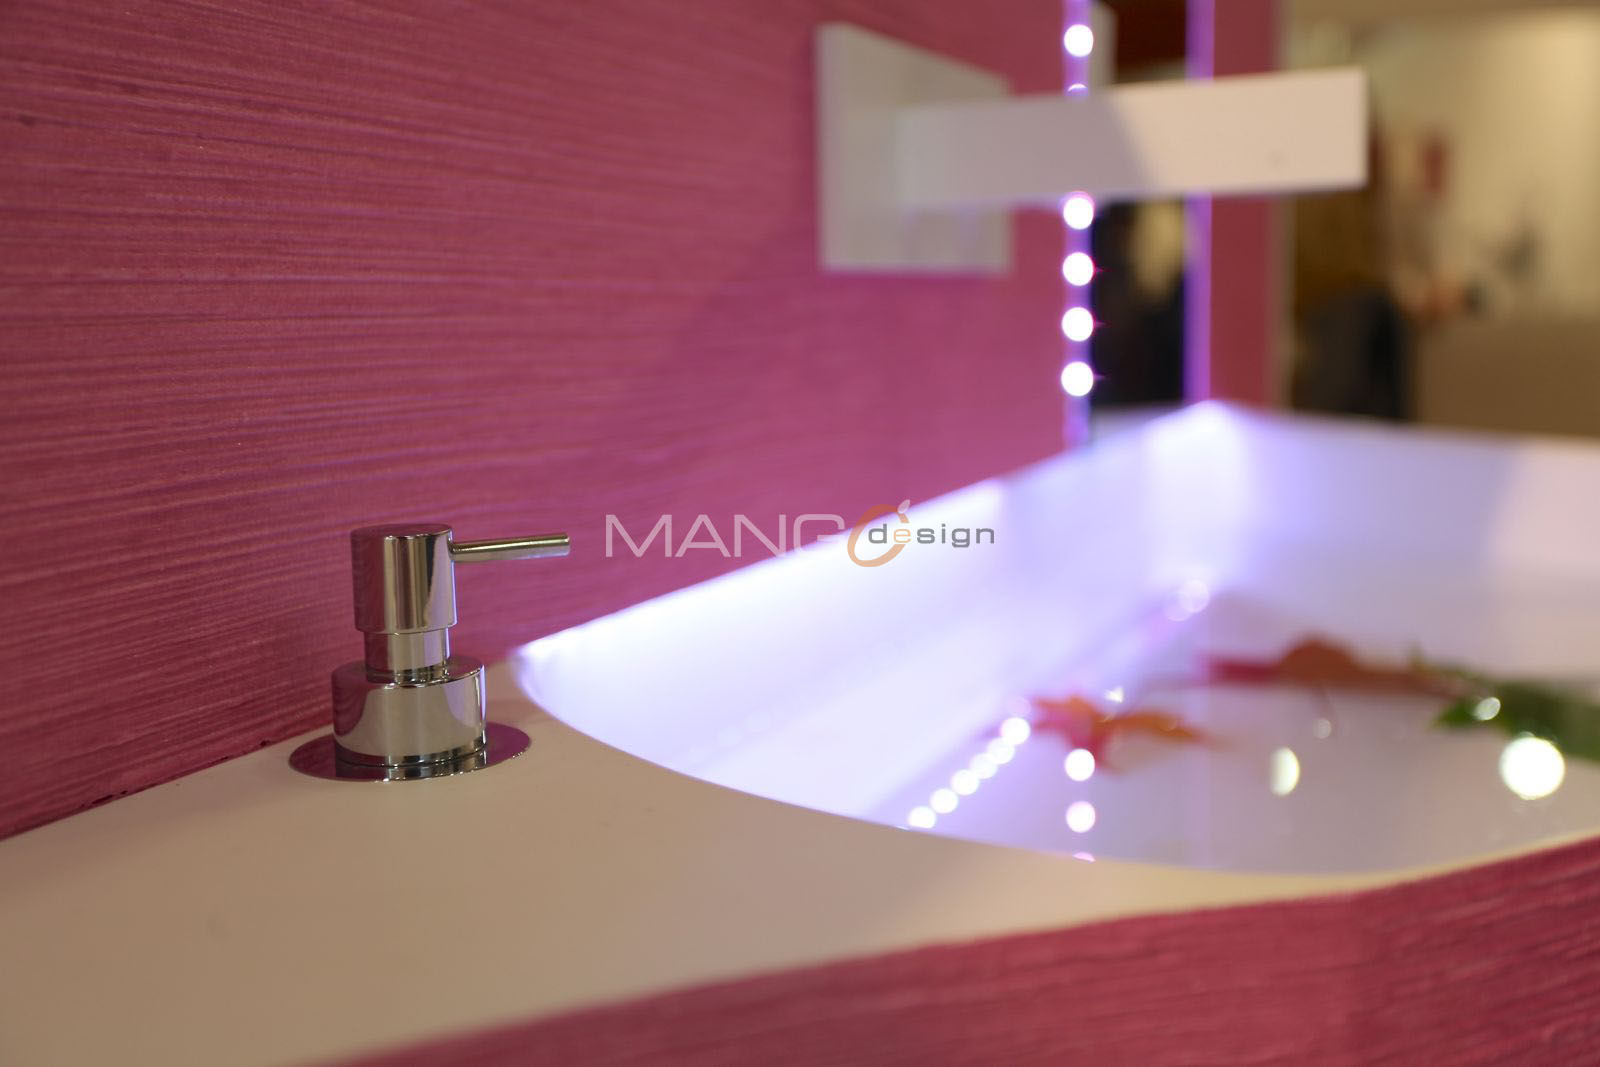 mangodesign_fiera2012 - 7